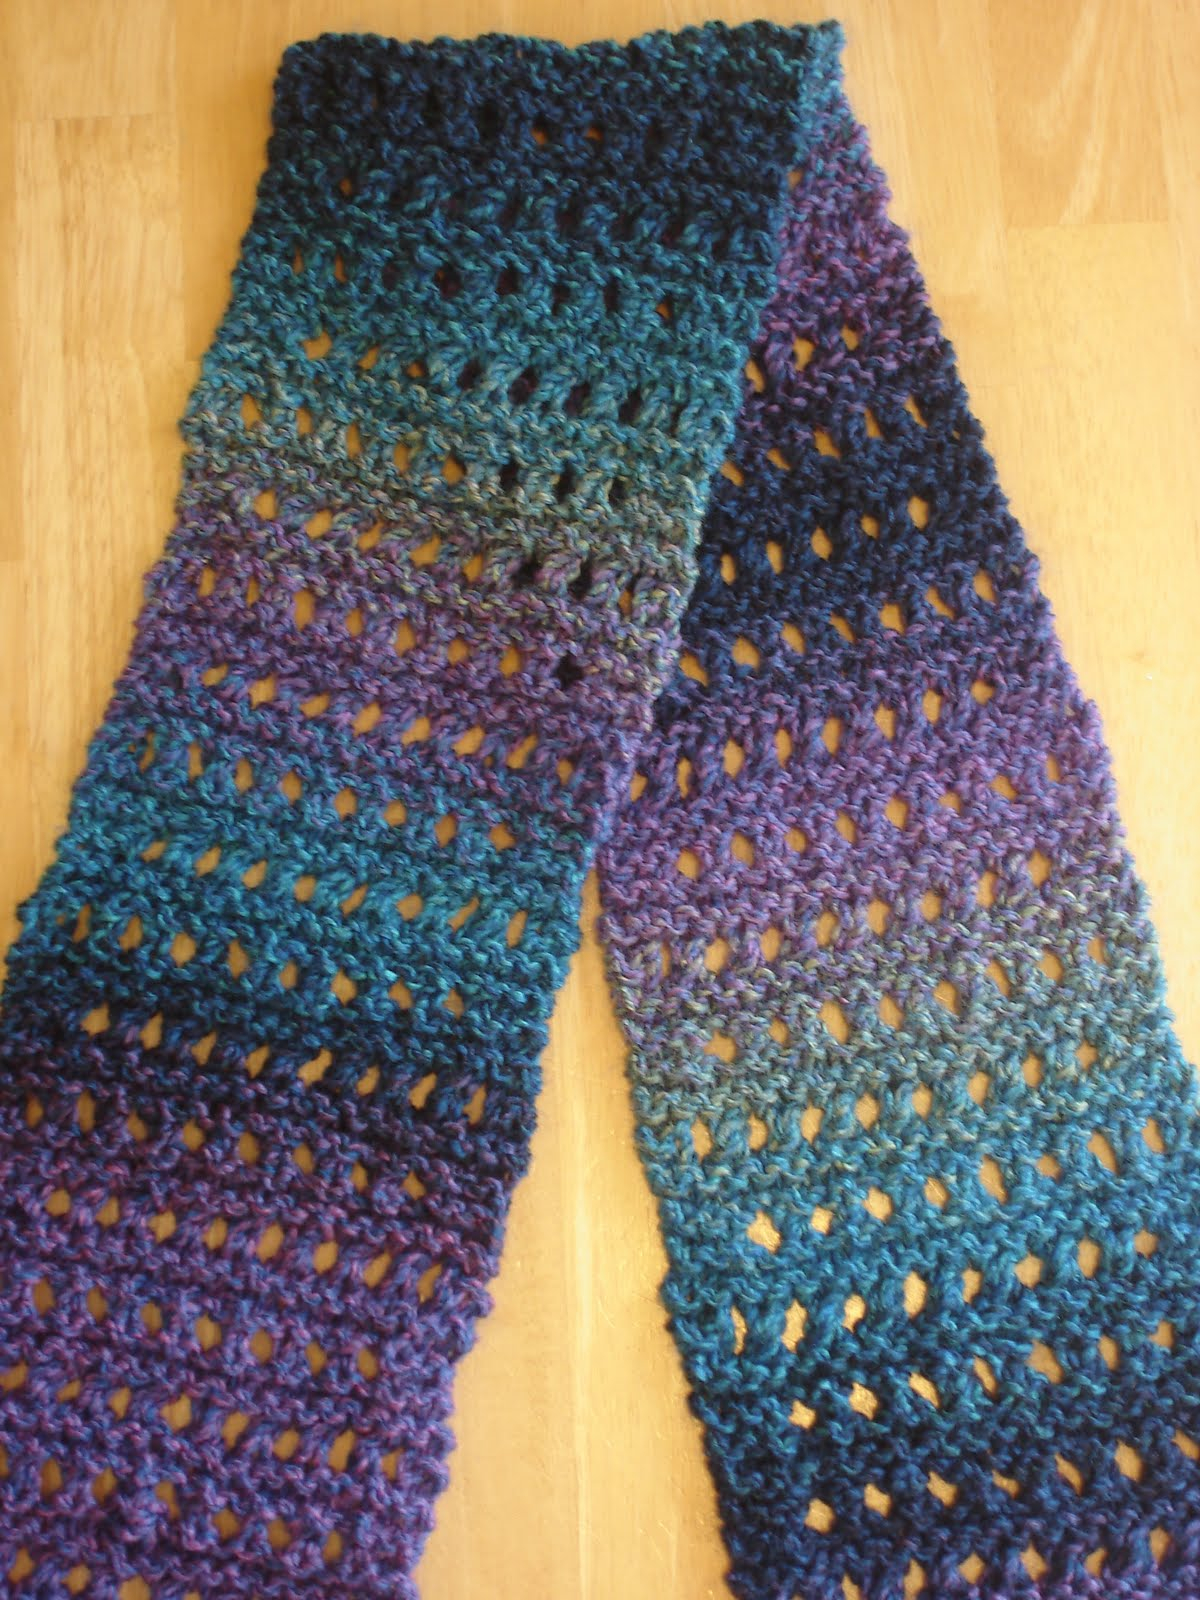 Scarf Patterns Knitting Beginner Finding Free Knitting Patterns For Scarves Thefashiontamer